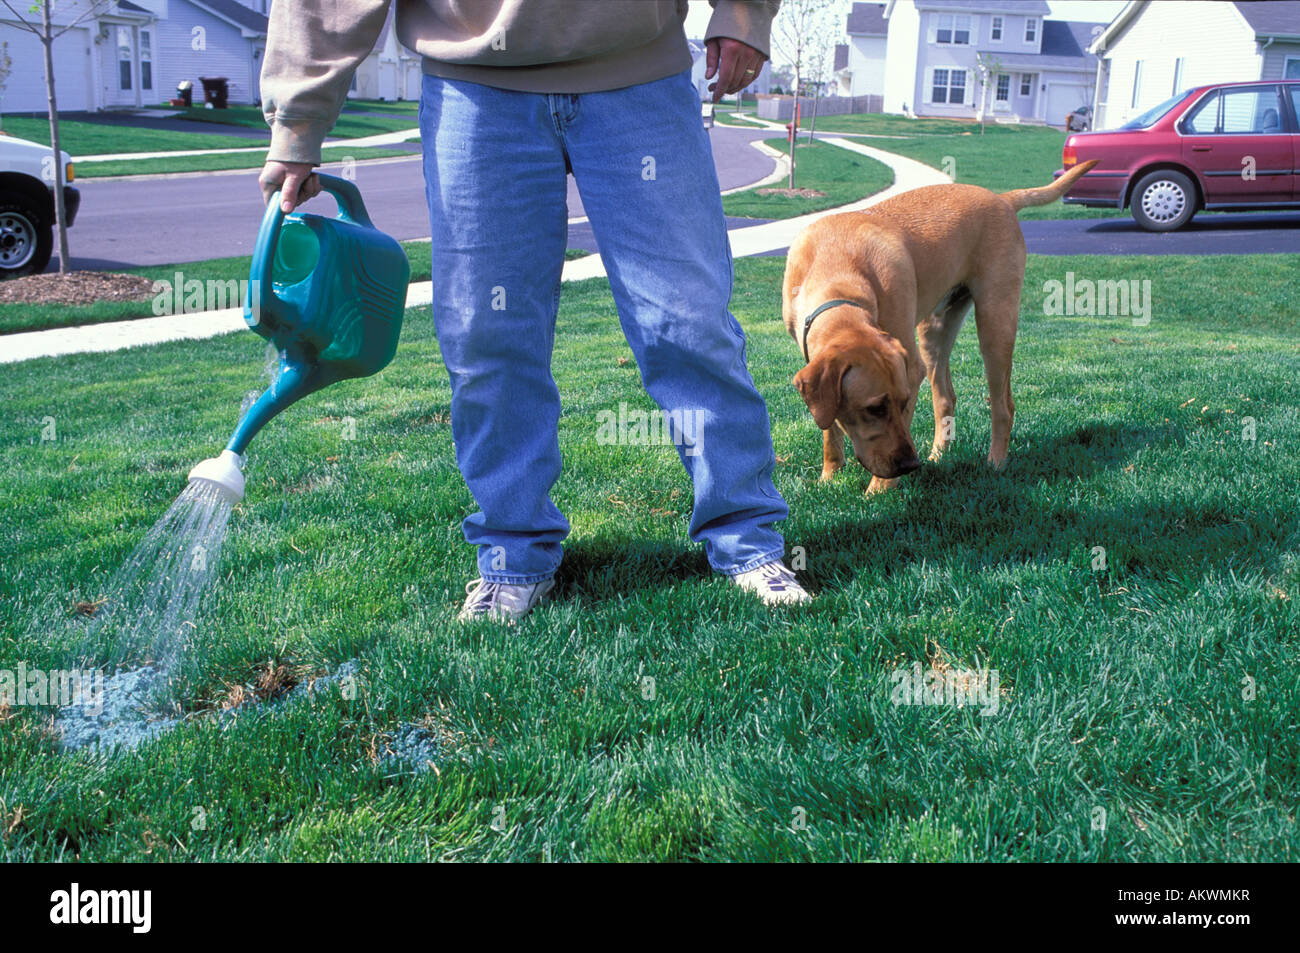 Man repairing grass in his lawn in a suburb - Stock Image